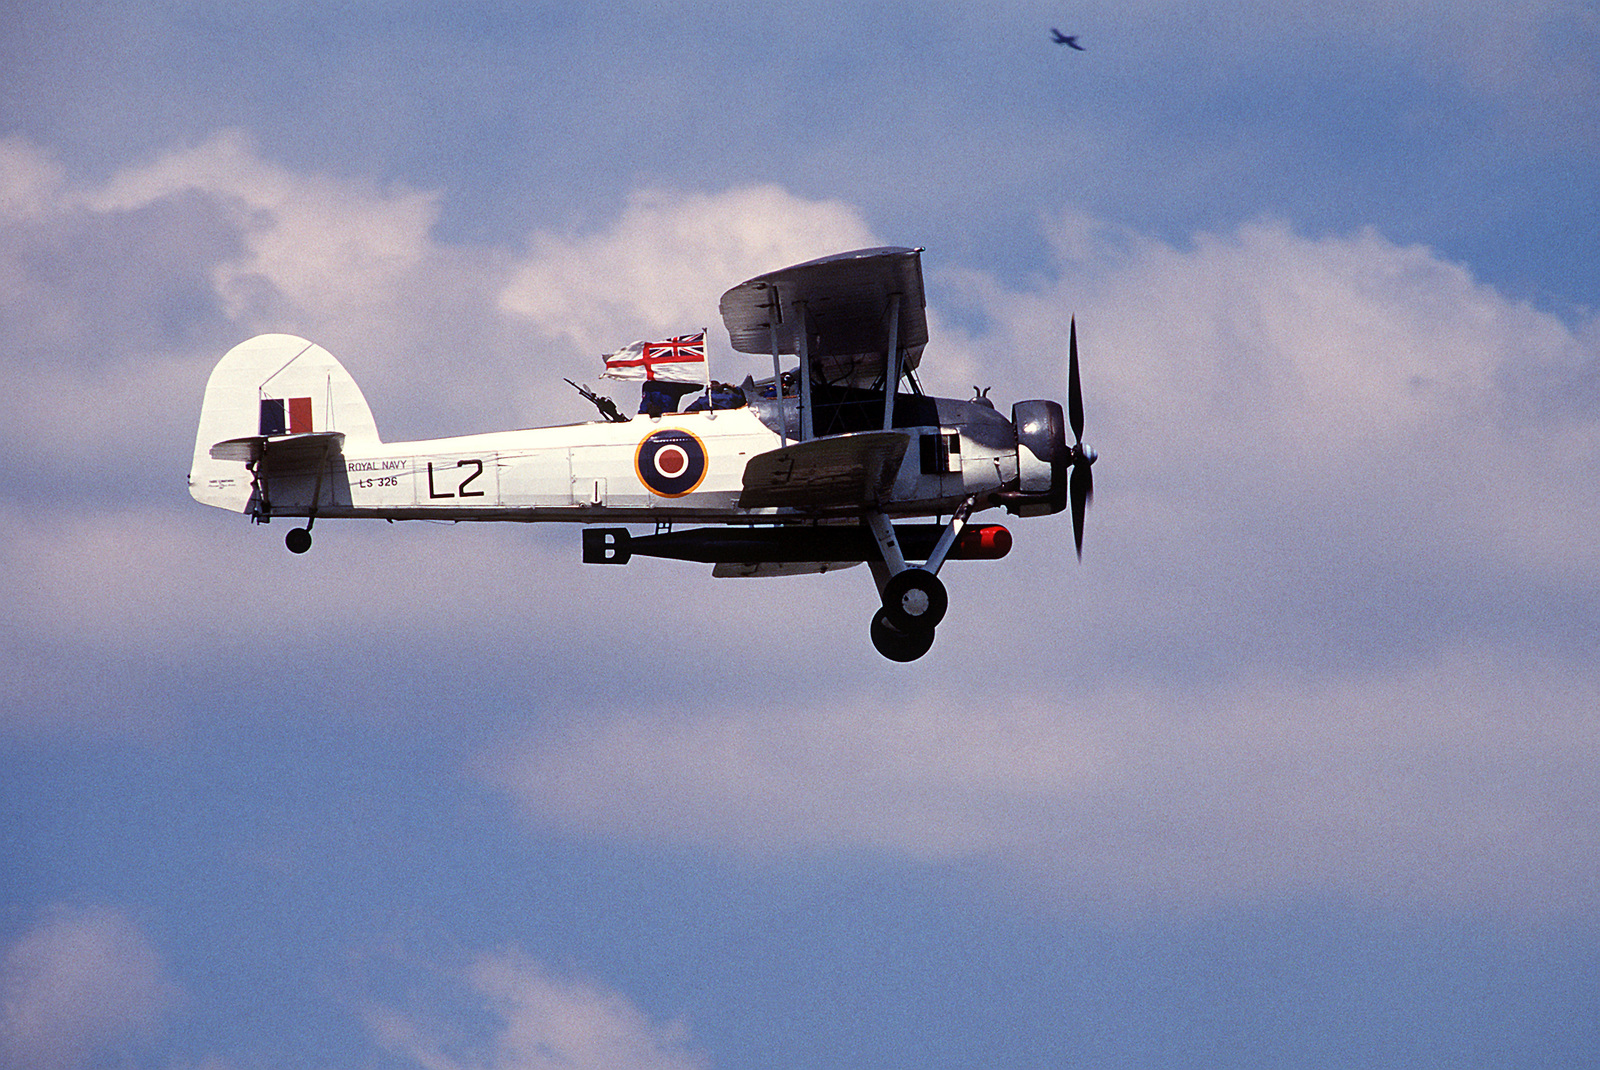 A right side view of a World War II British TBM-3 Avenger torpedo bomber aircraft in-flight during Air Fete '88, a NATO aircraft display hosted by the 513th Airborne Command and Control Wing